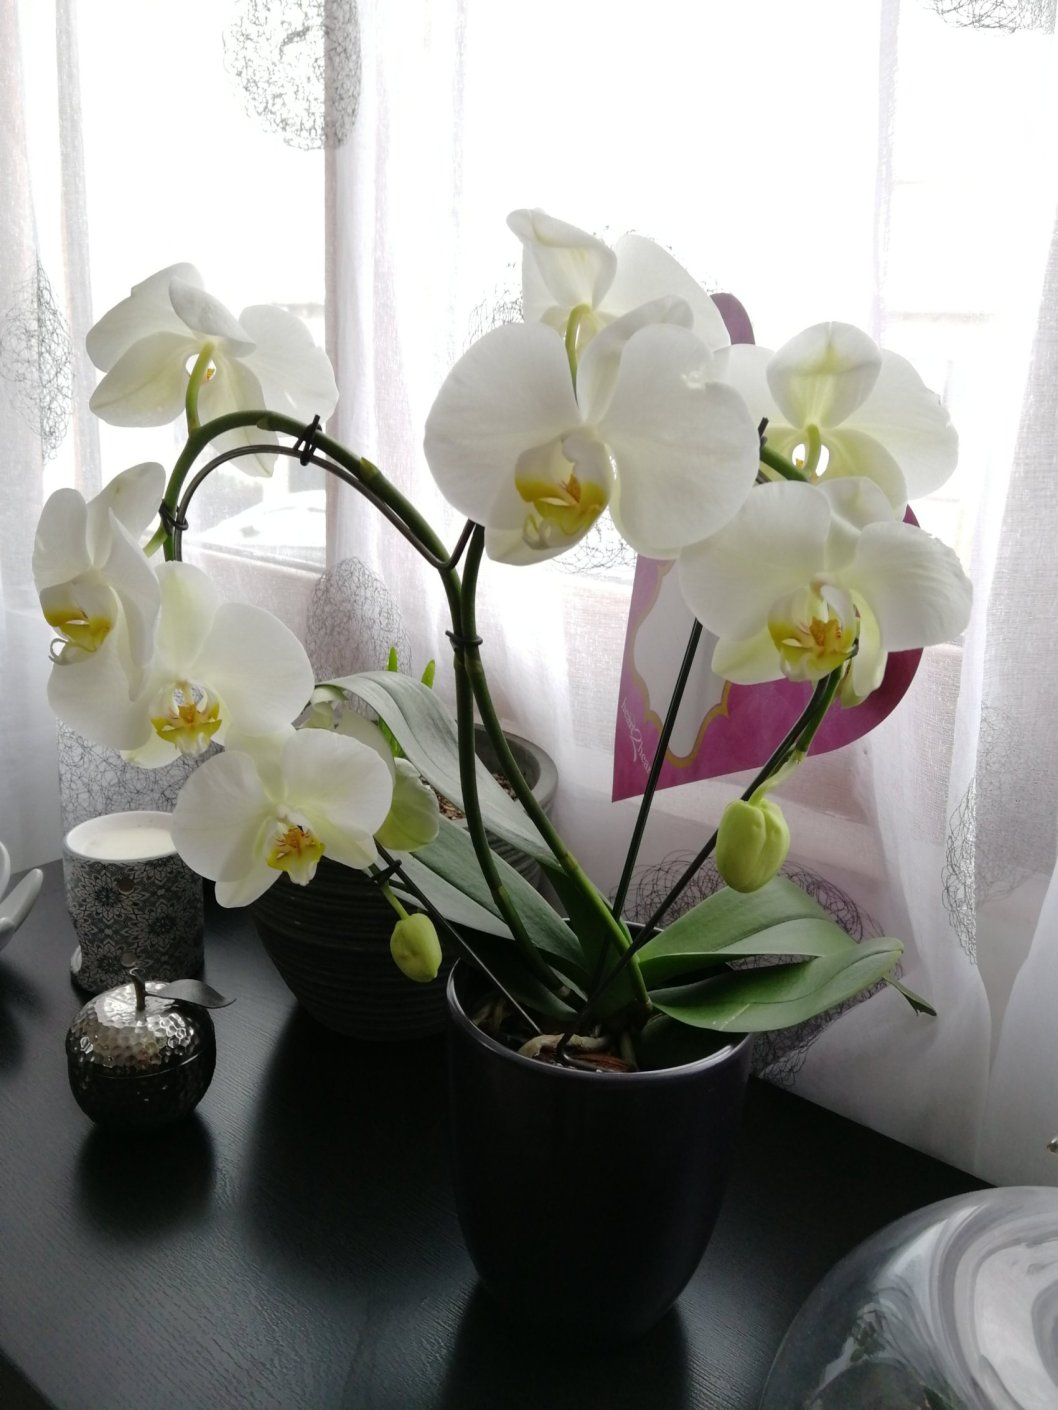 boxbeaute_box_beaute_bio-belle_au_naturel_belleaunaturel_abonnementbox_bonplanbox_fleur_orchidee.jpg